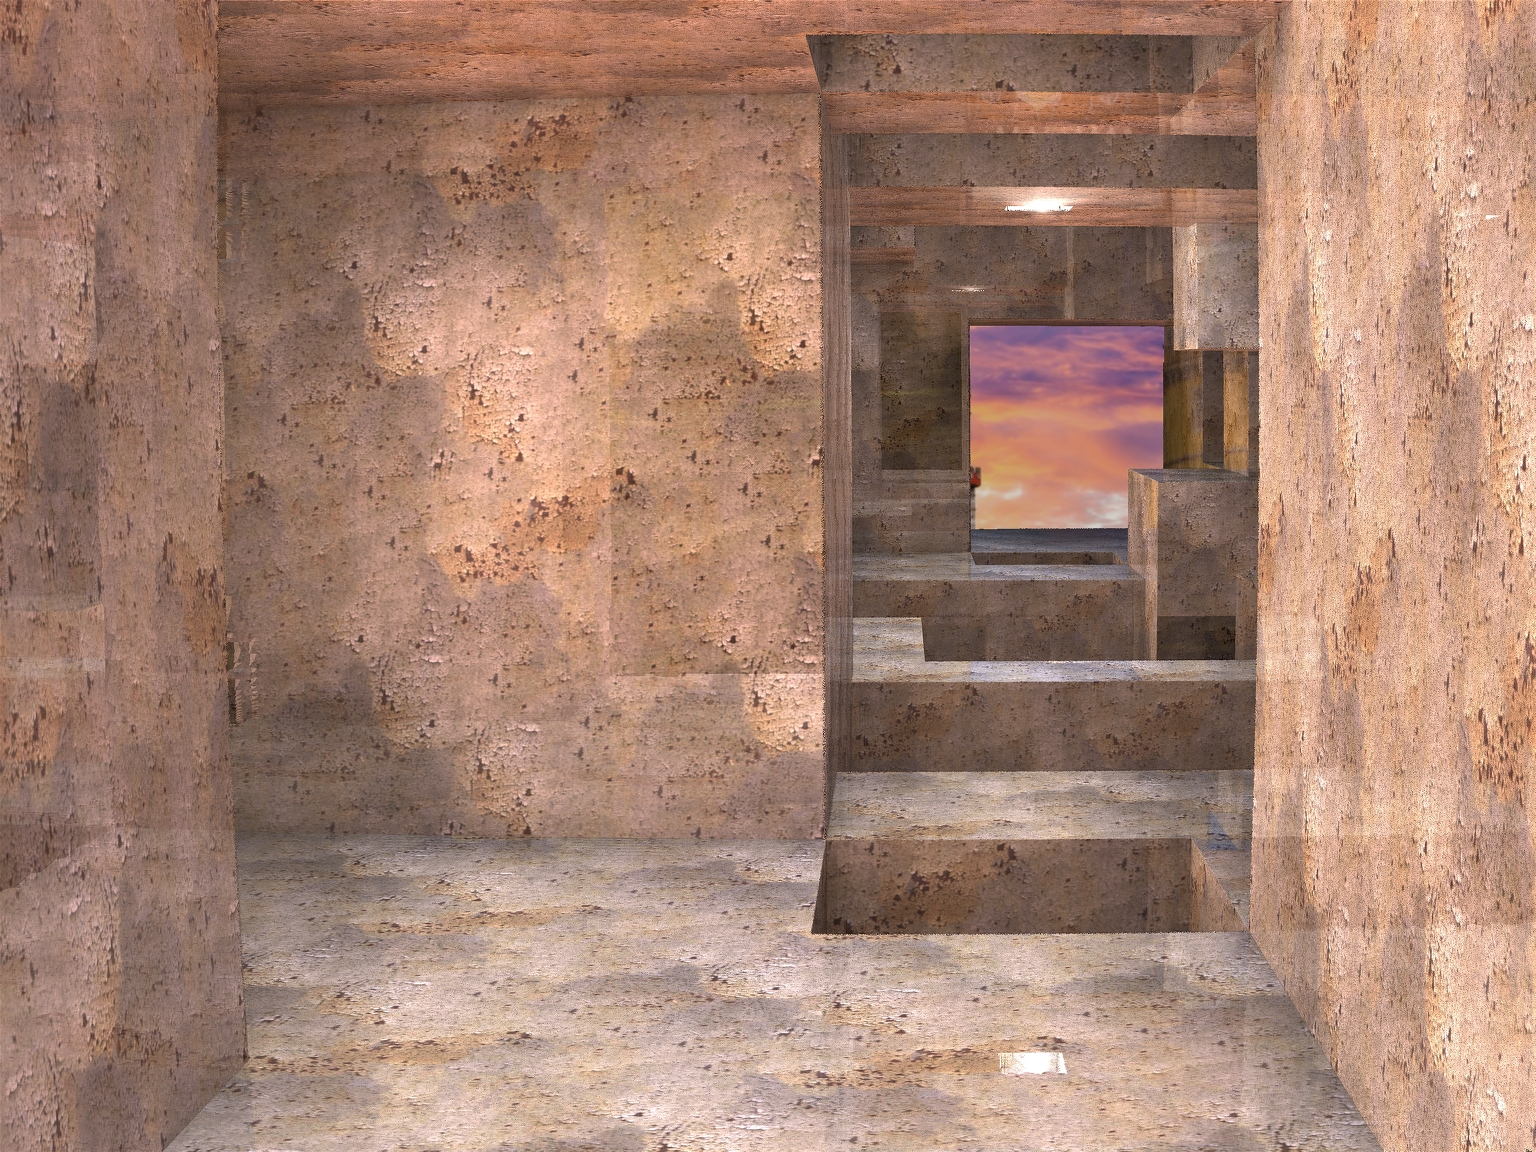 The Rustic Ancient House - Pong 121 by Topas2012